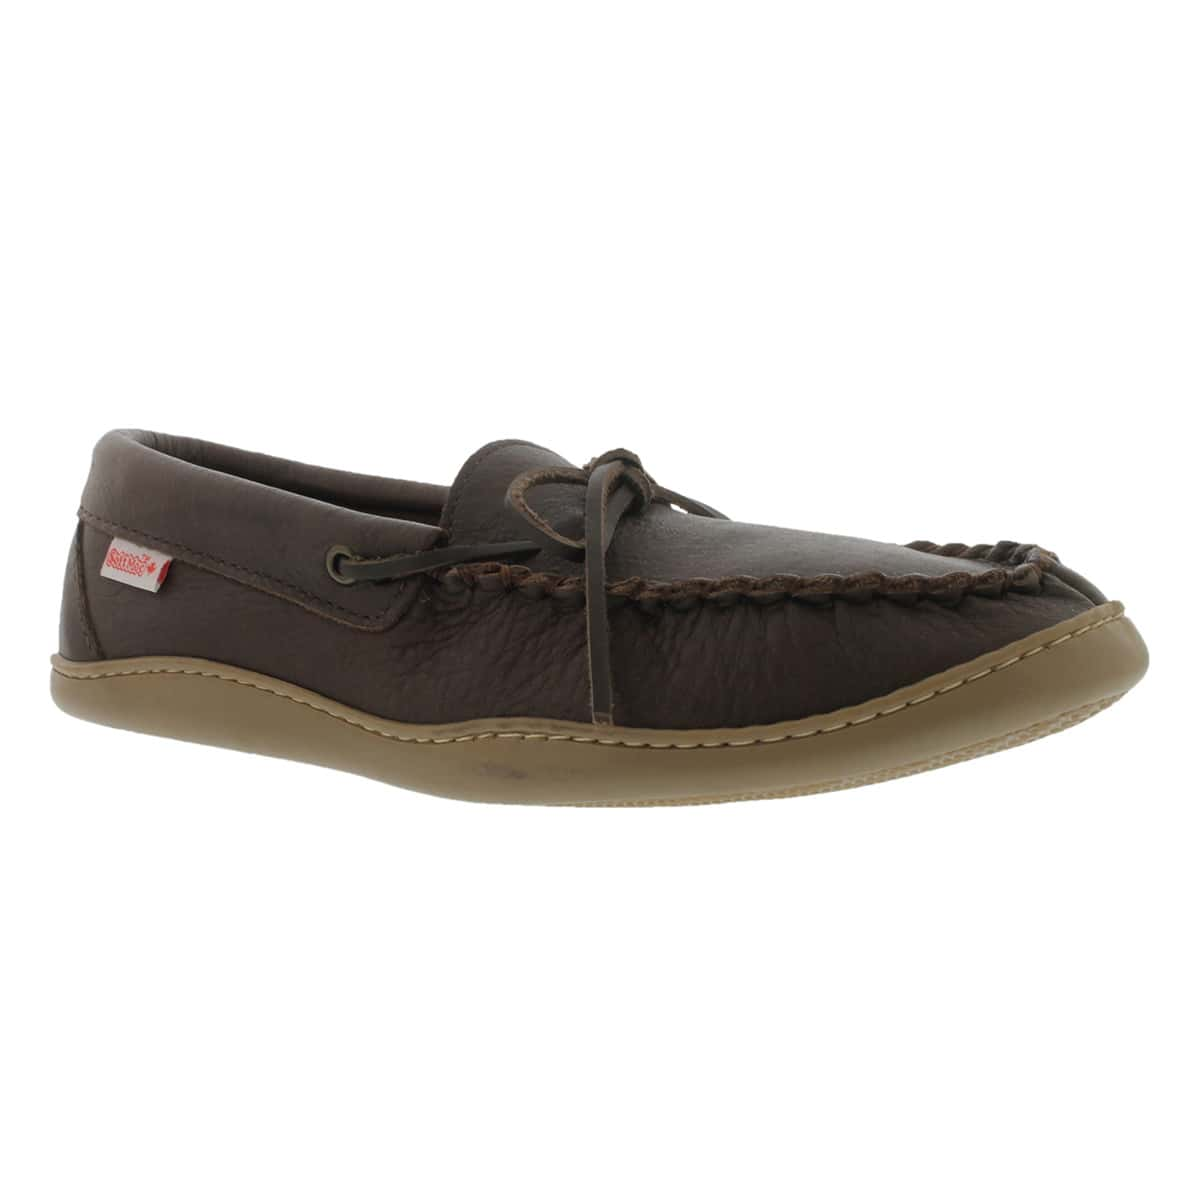 Mns fudge rubber sole moose moccasin